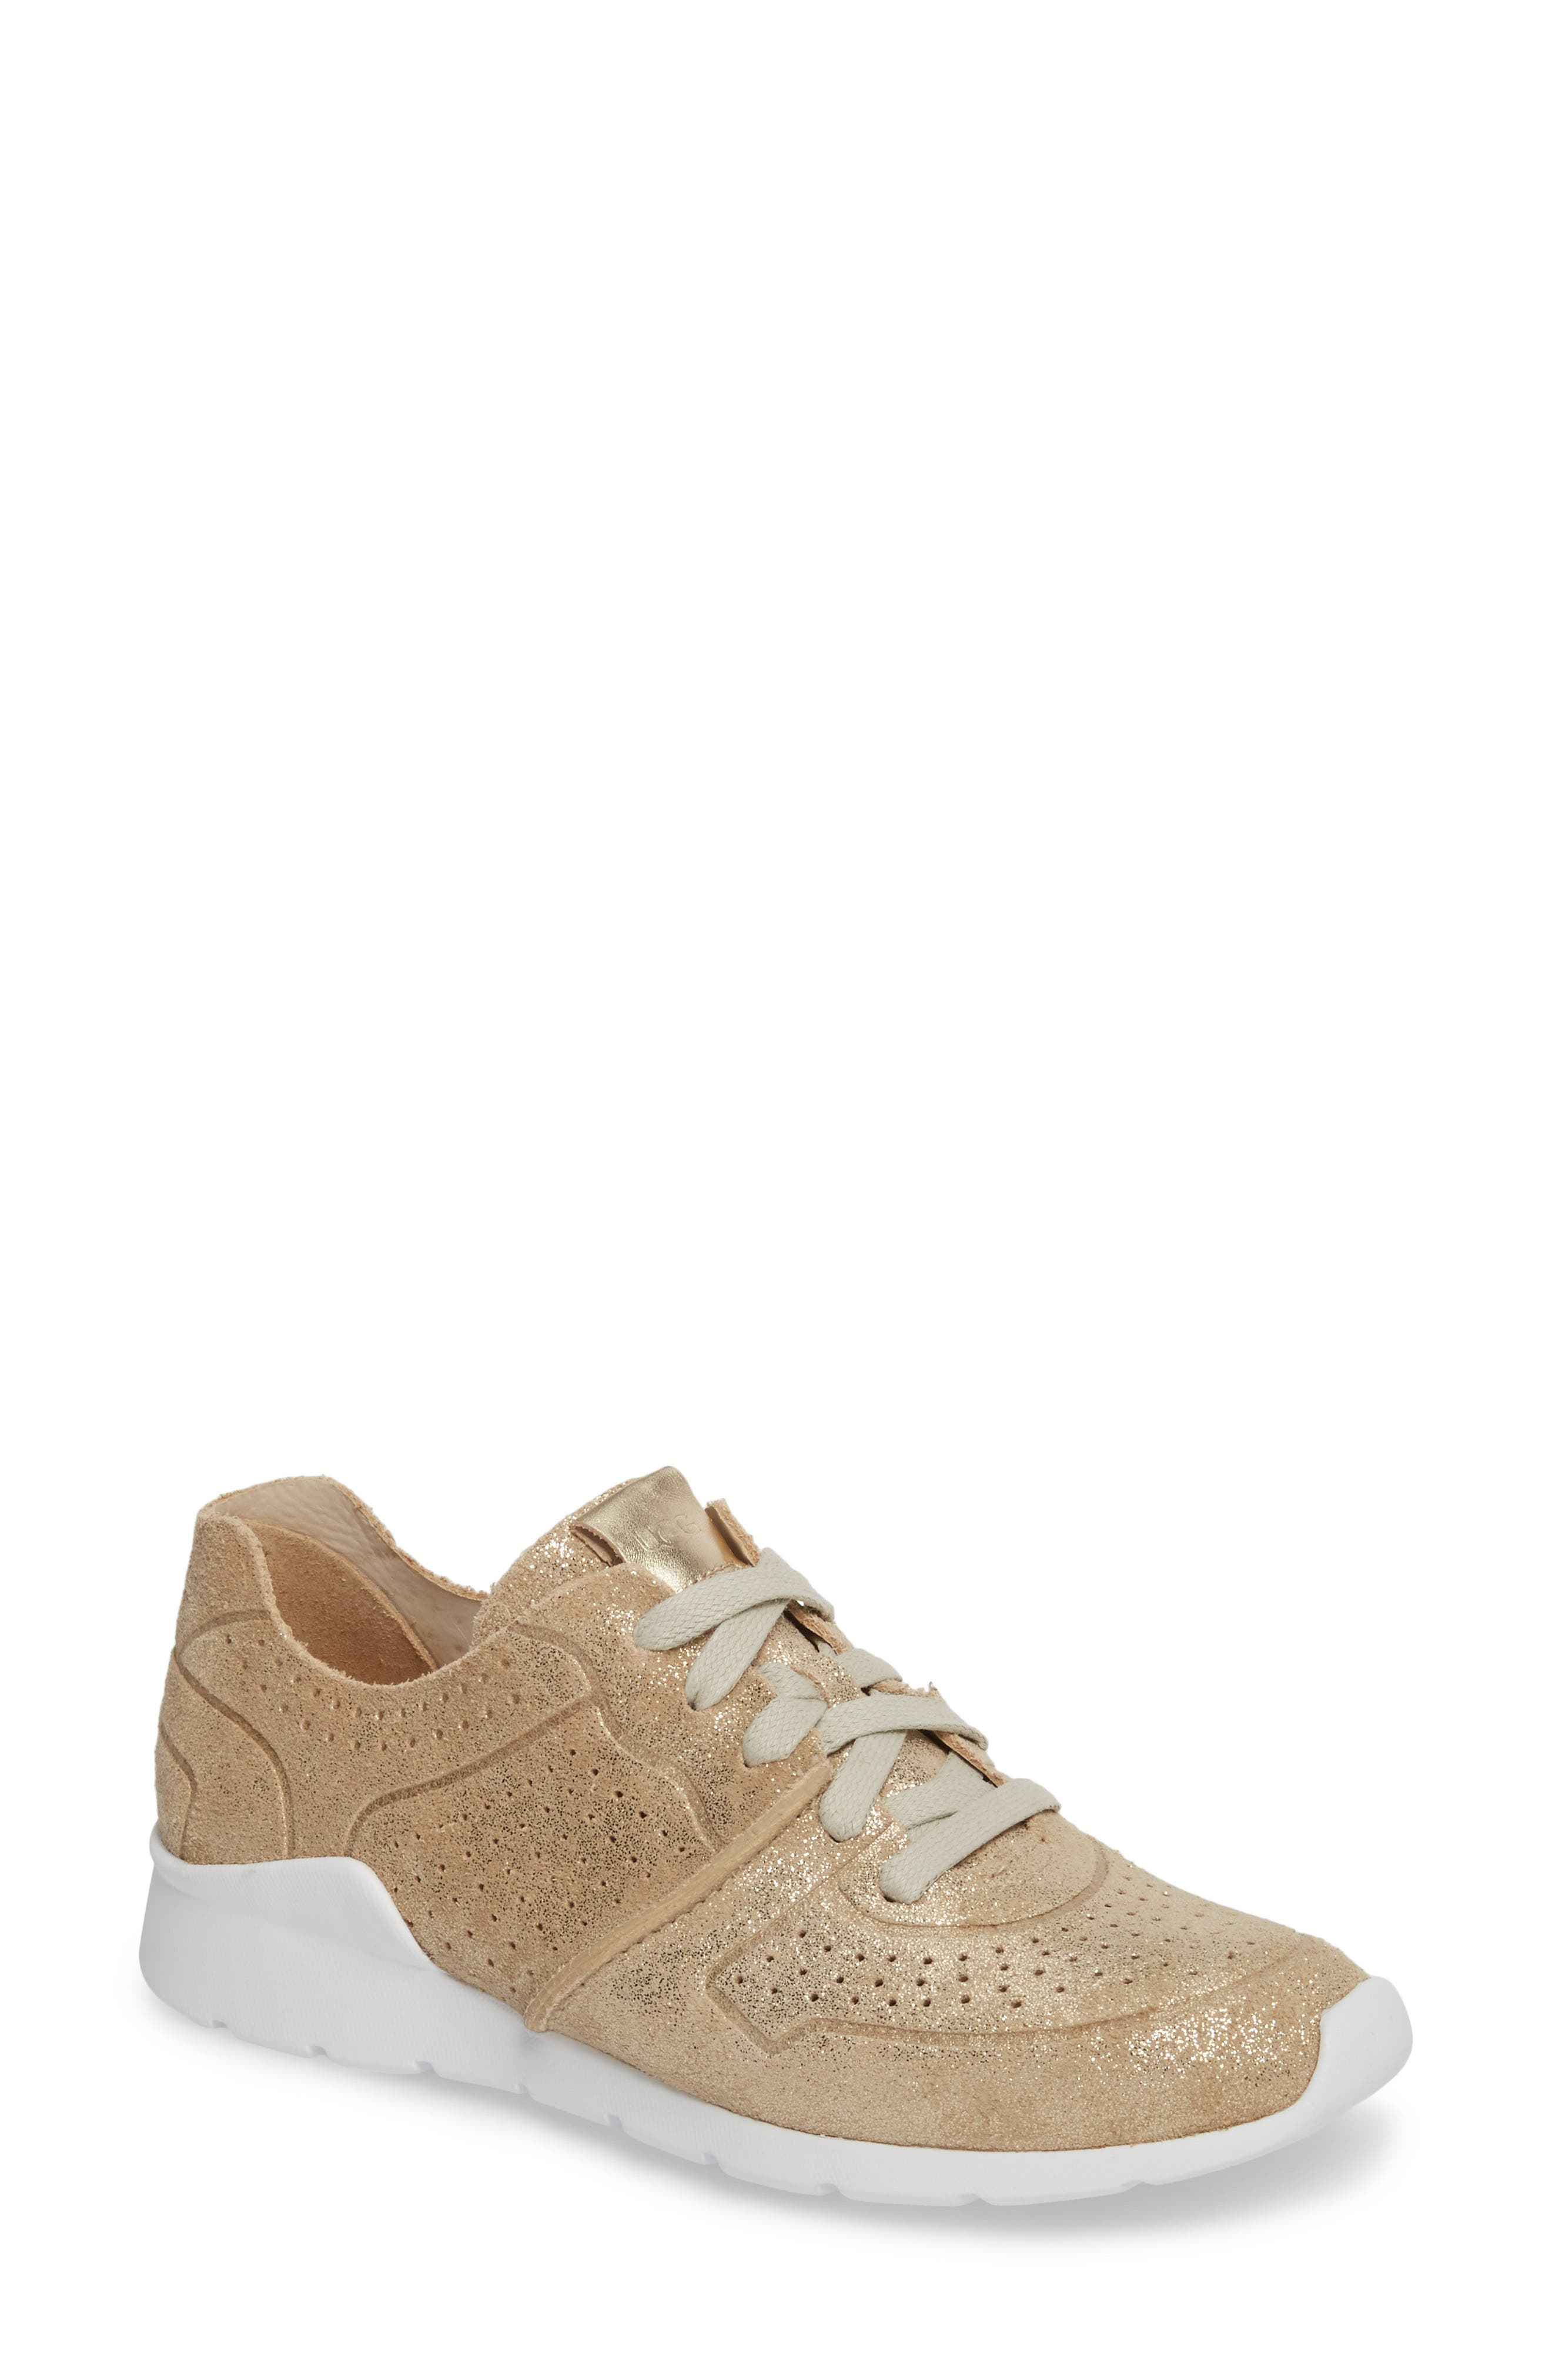 UGG<SUP>®</SUP>, Tye Stardust Sneaker, Main thumbnail 1, color, GOLD LEATHER